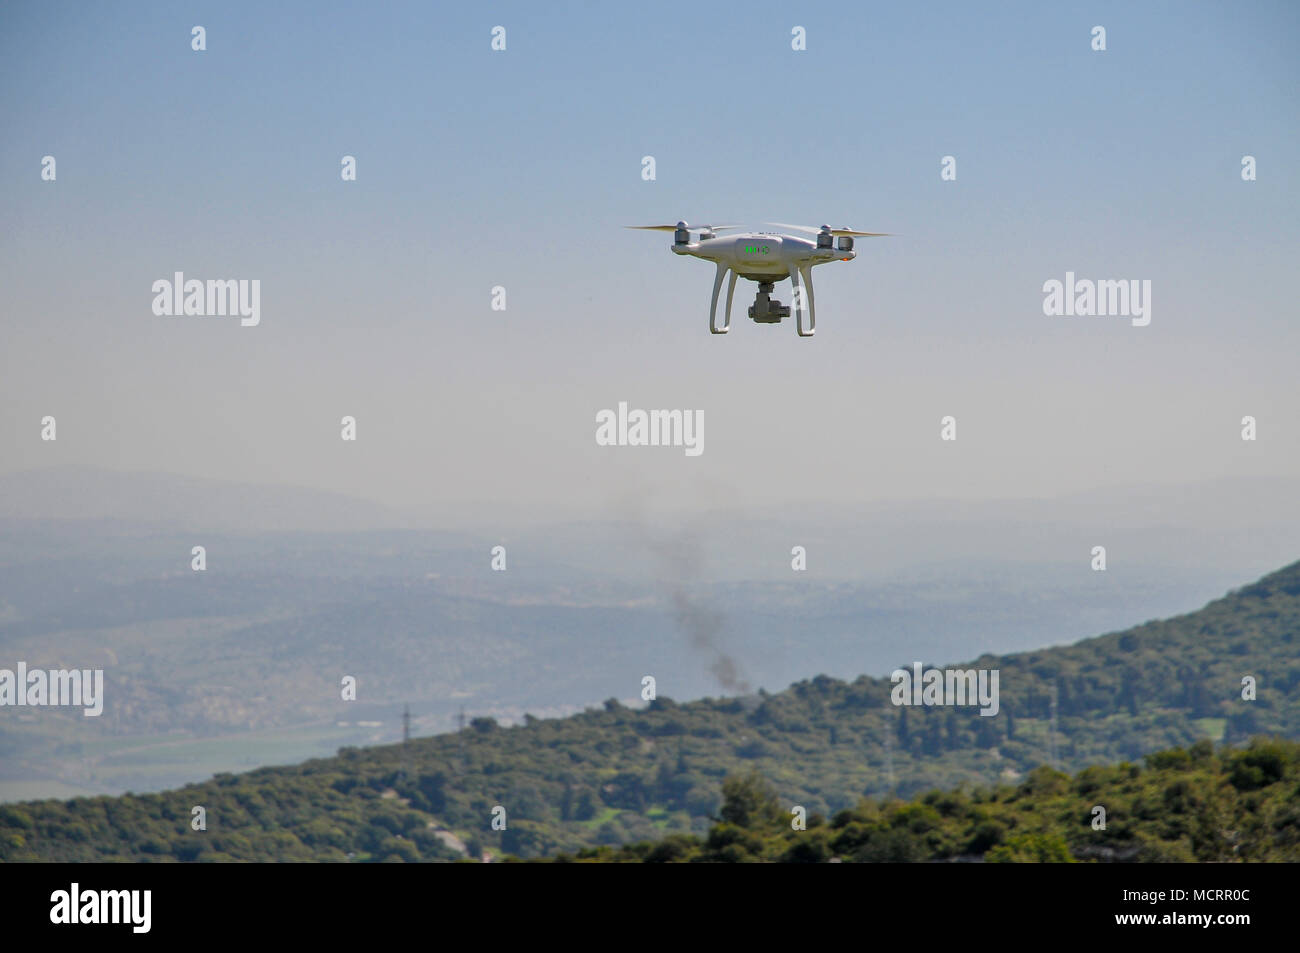 Remote control Quadrocopter, drone, with camera flying against a blue sky - Stock Image